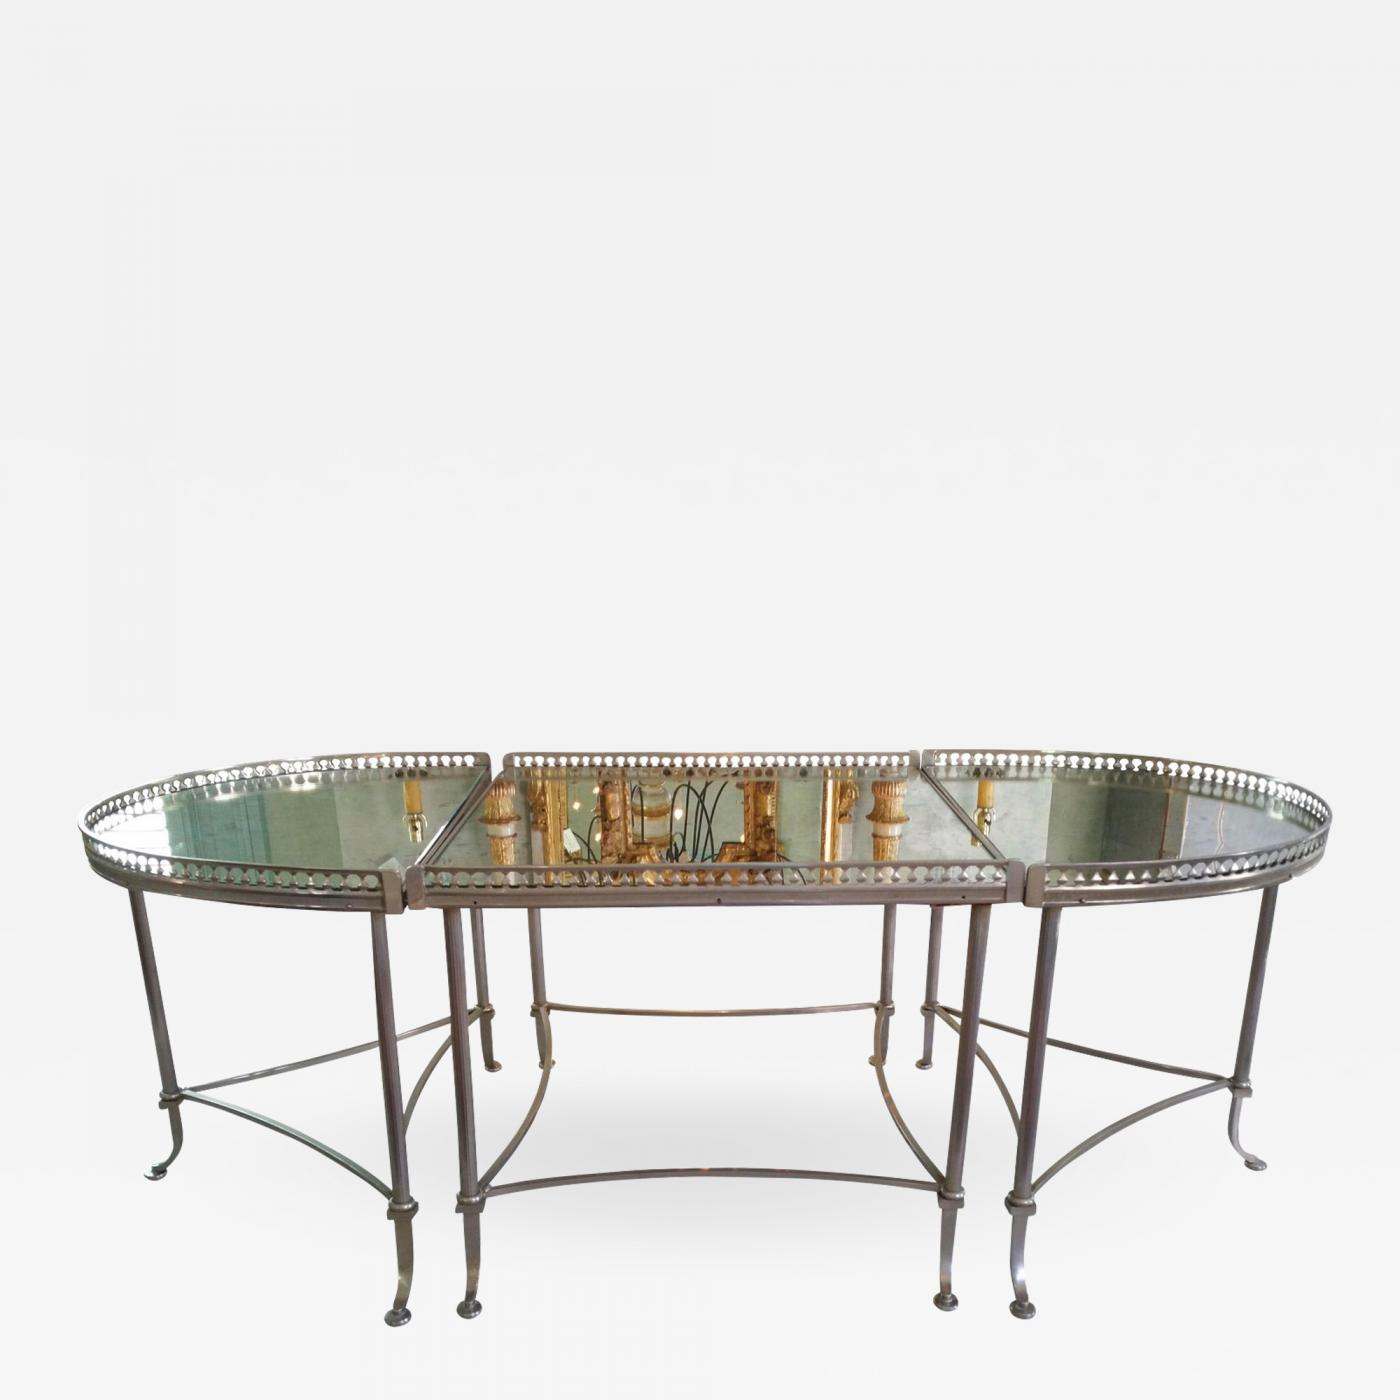 Maison Bagues Silver Colored Tripartite Coffee Table Attributed To Maison Bagues